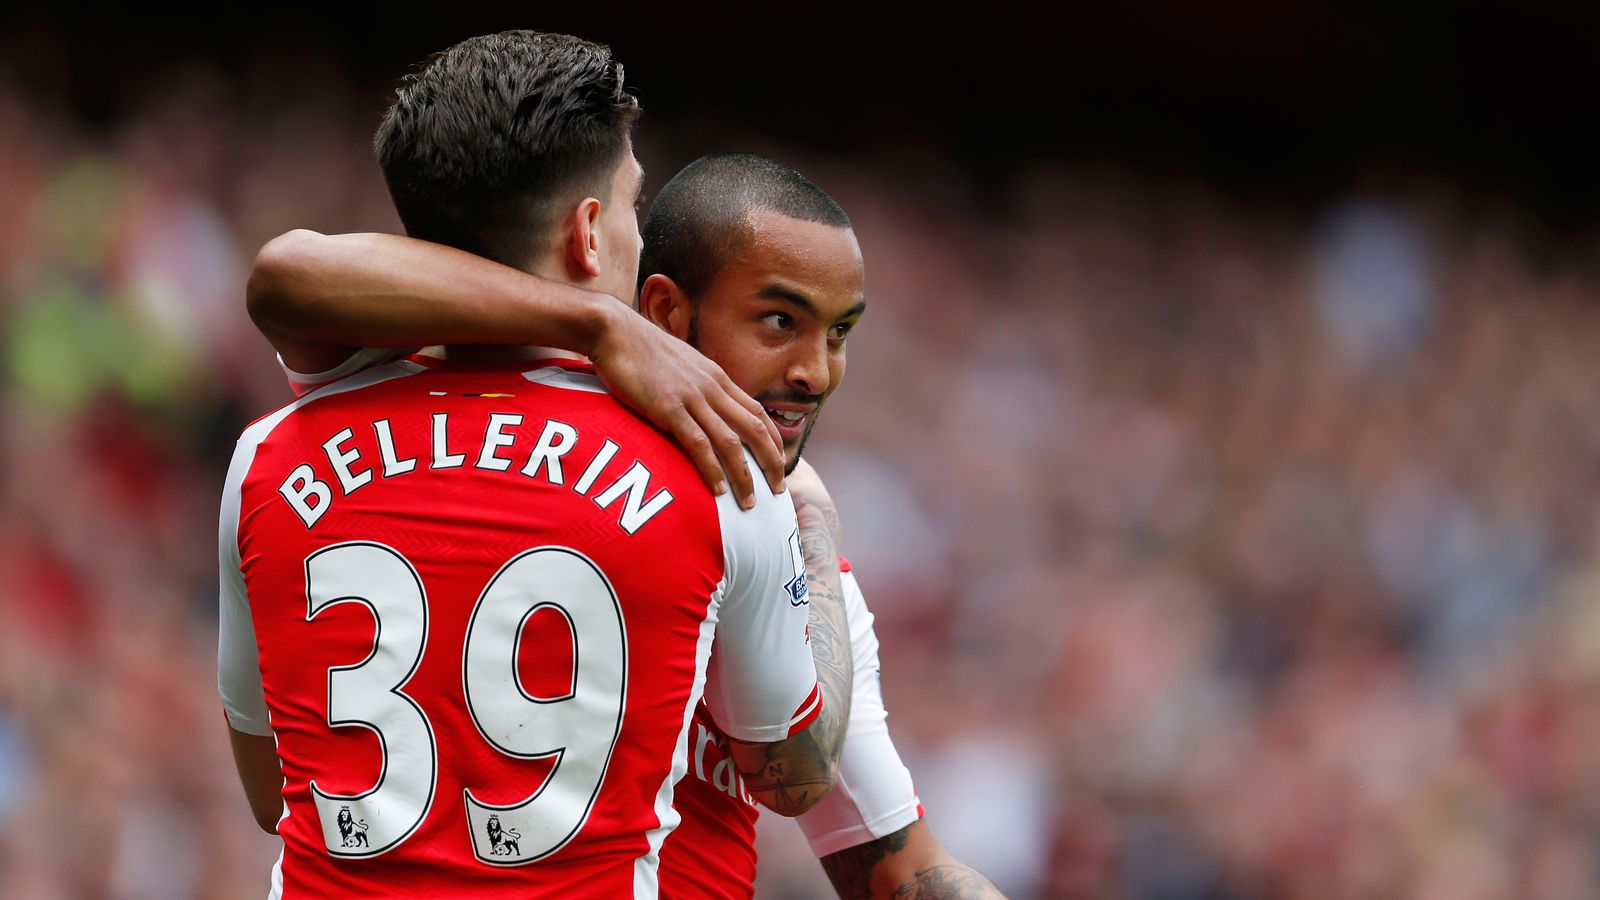 Hector Bellerin Reveals New Shirt Number For Upcoming